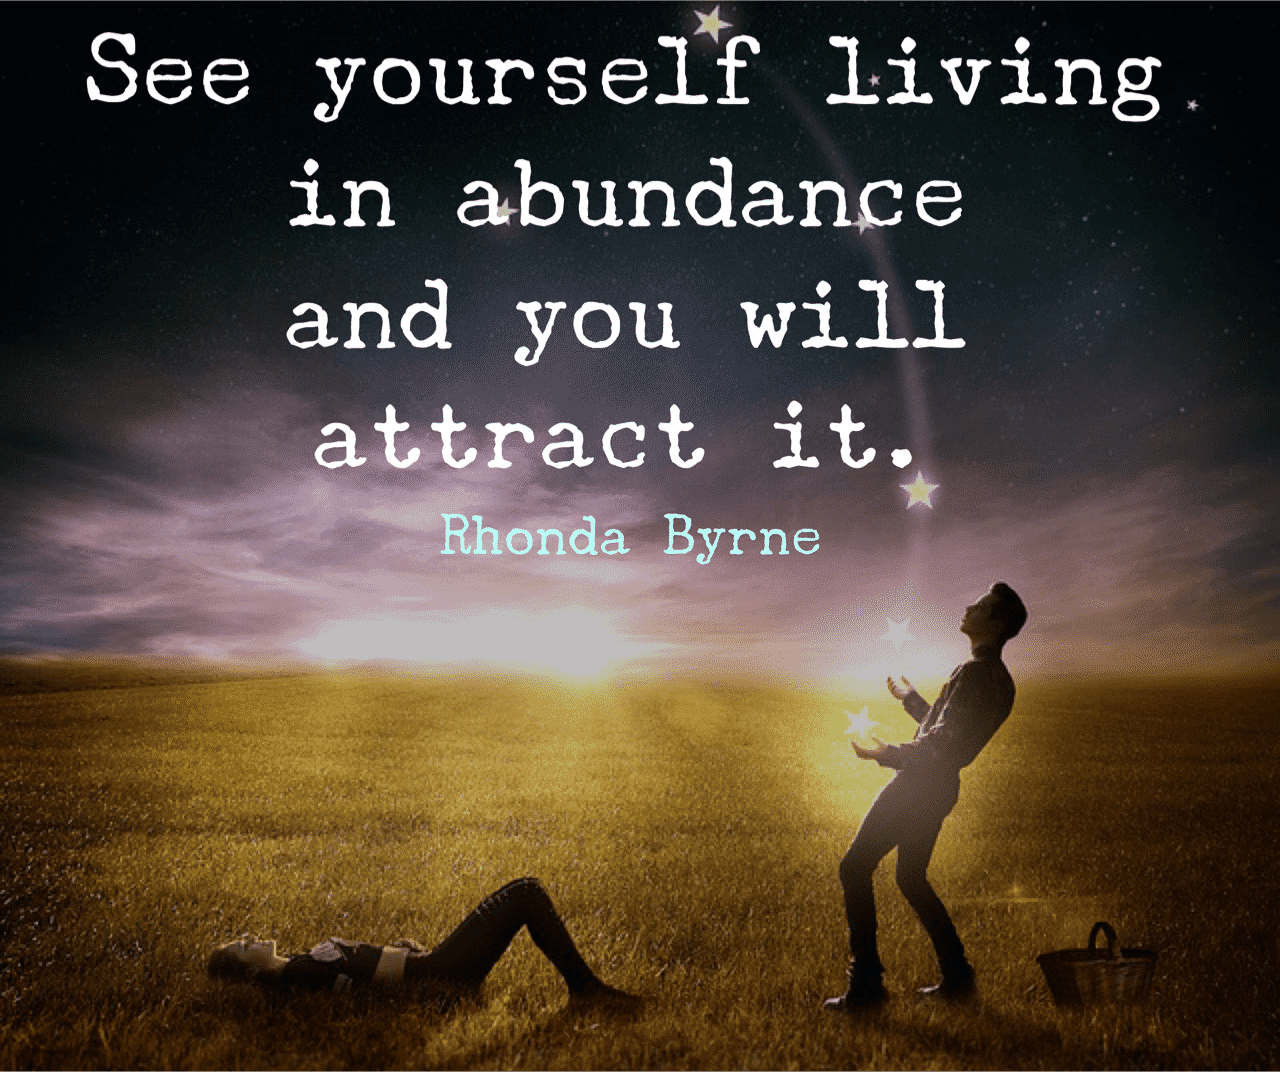 Law Of Attraction Quotes Entrancing The Very Best Law Of Attraction Quotes